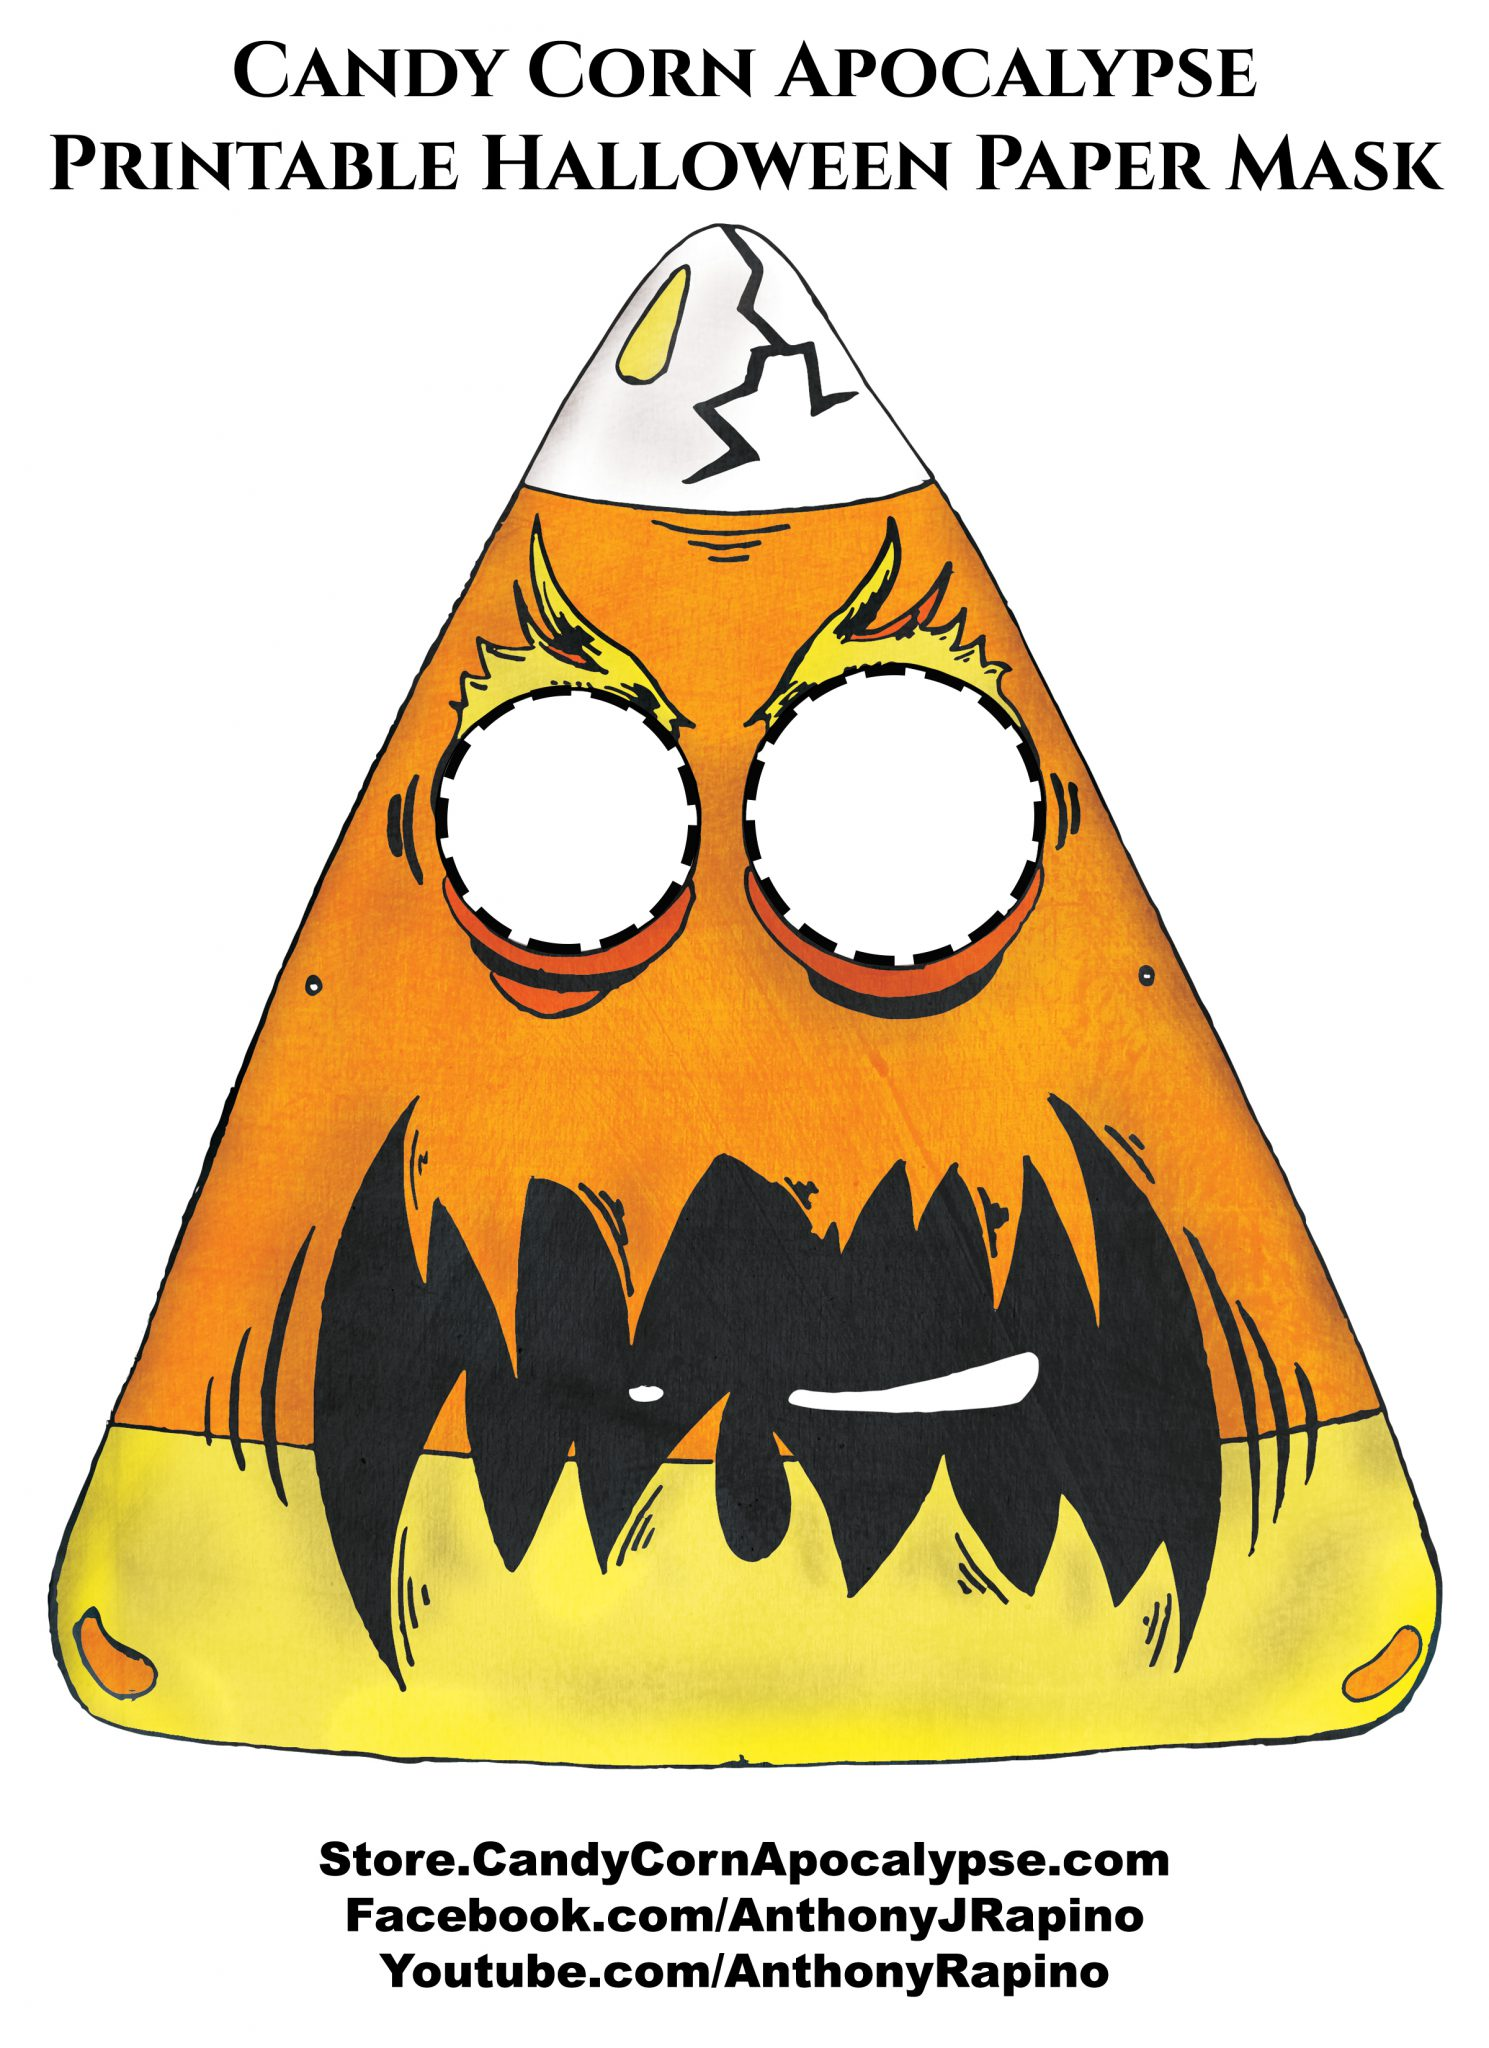 Candy Corn Apocalypse Free Halloween paper mask printable